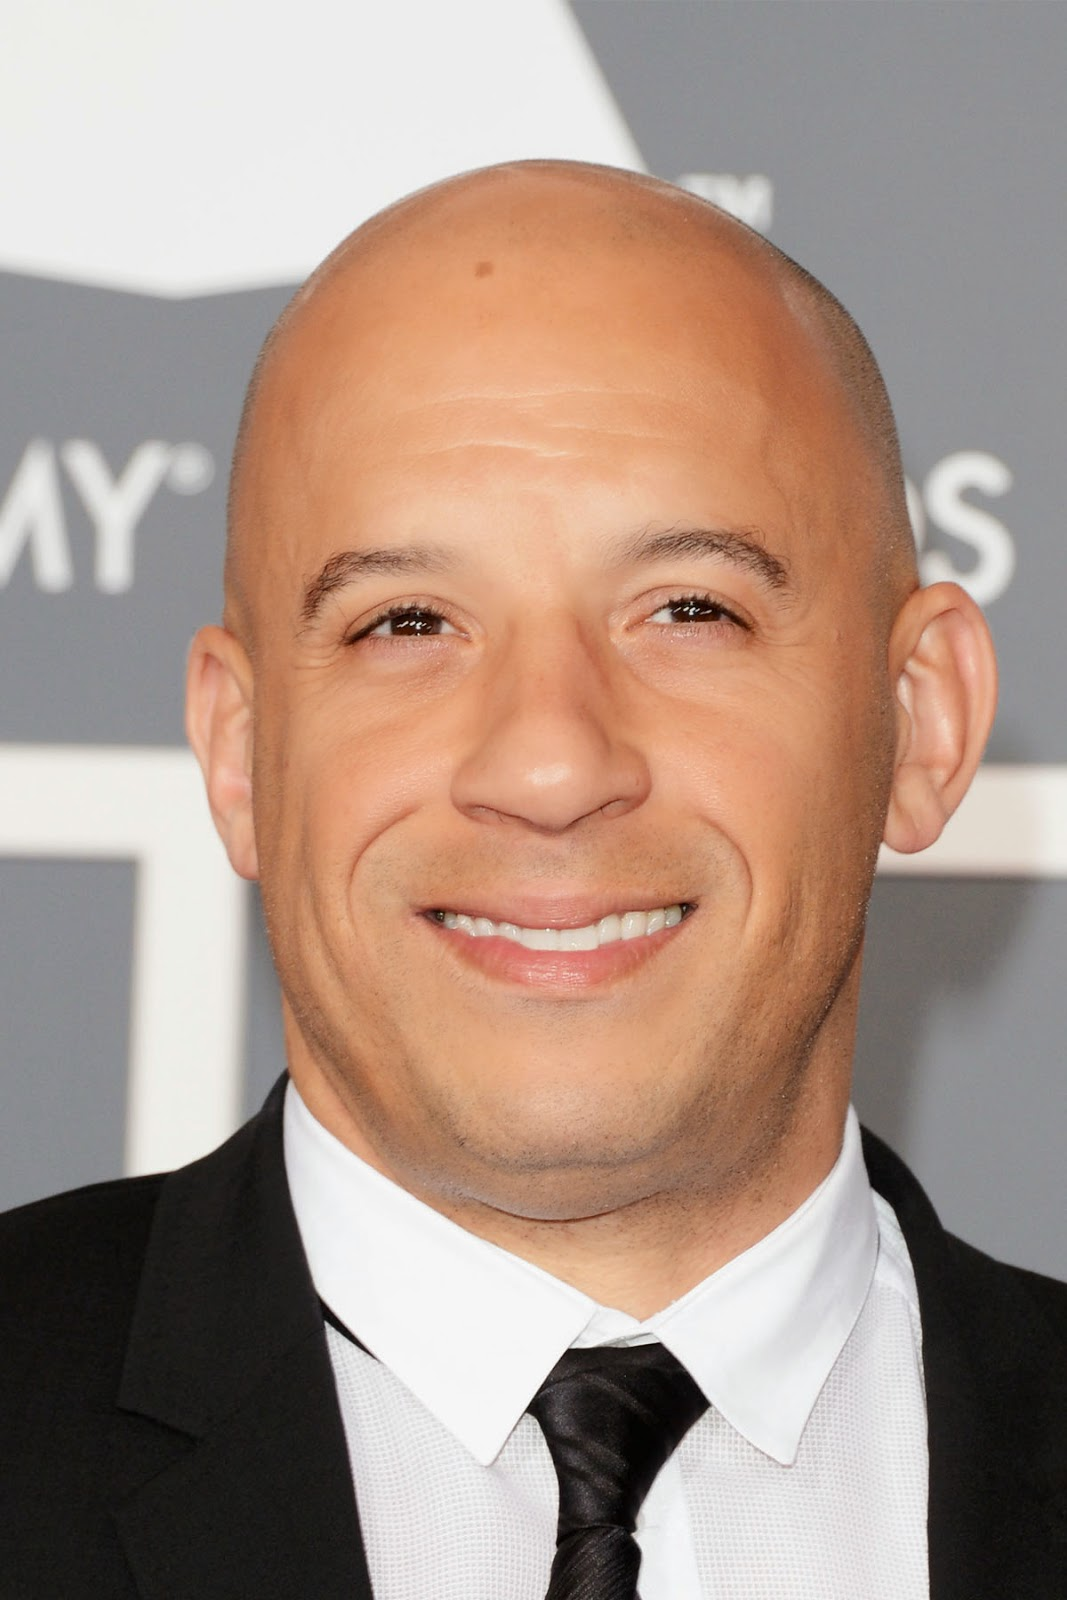 Vin Diesel Hd Wallpapers Free Download,hollywood Actors - Miley Cyrus Hair Color 2011 , HD Wallpaper & Backgrounds